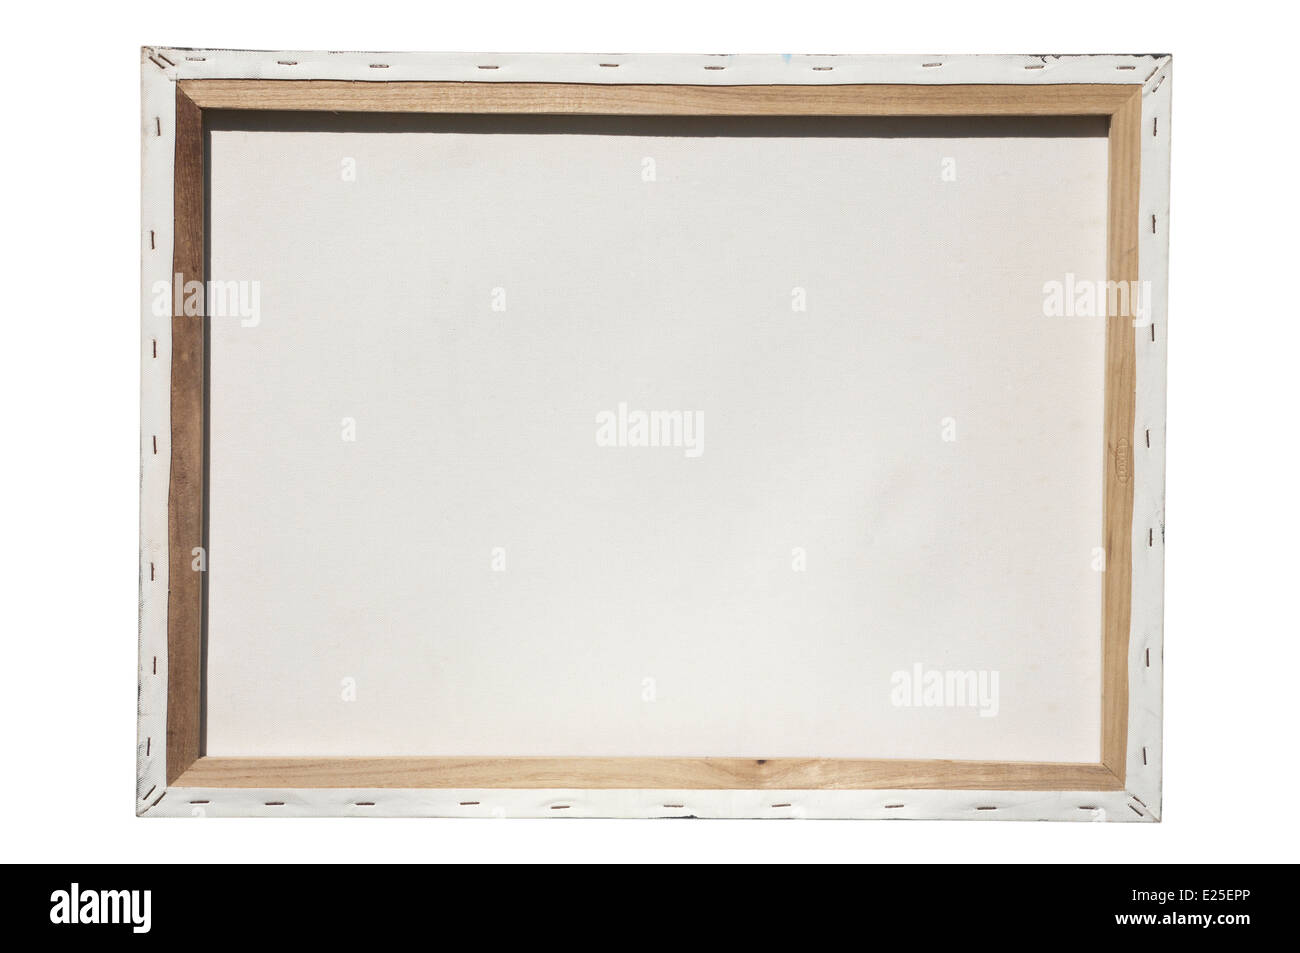 Stretched Canvas Stock Photos & Stretched Canvas Stock Images - Alamy